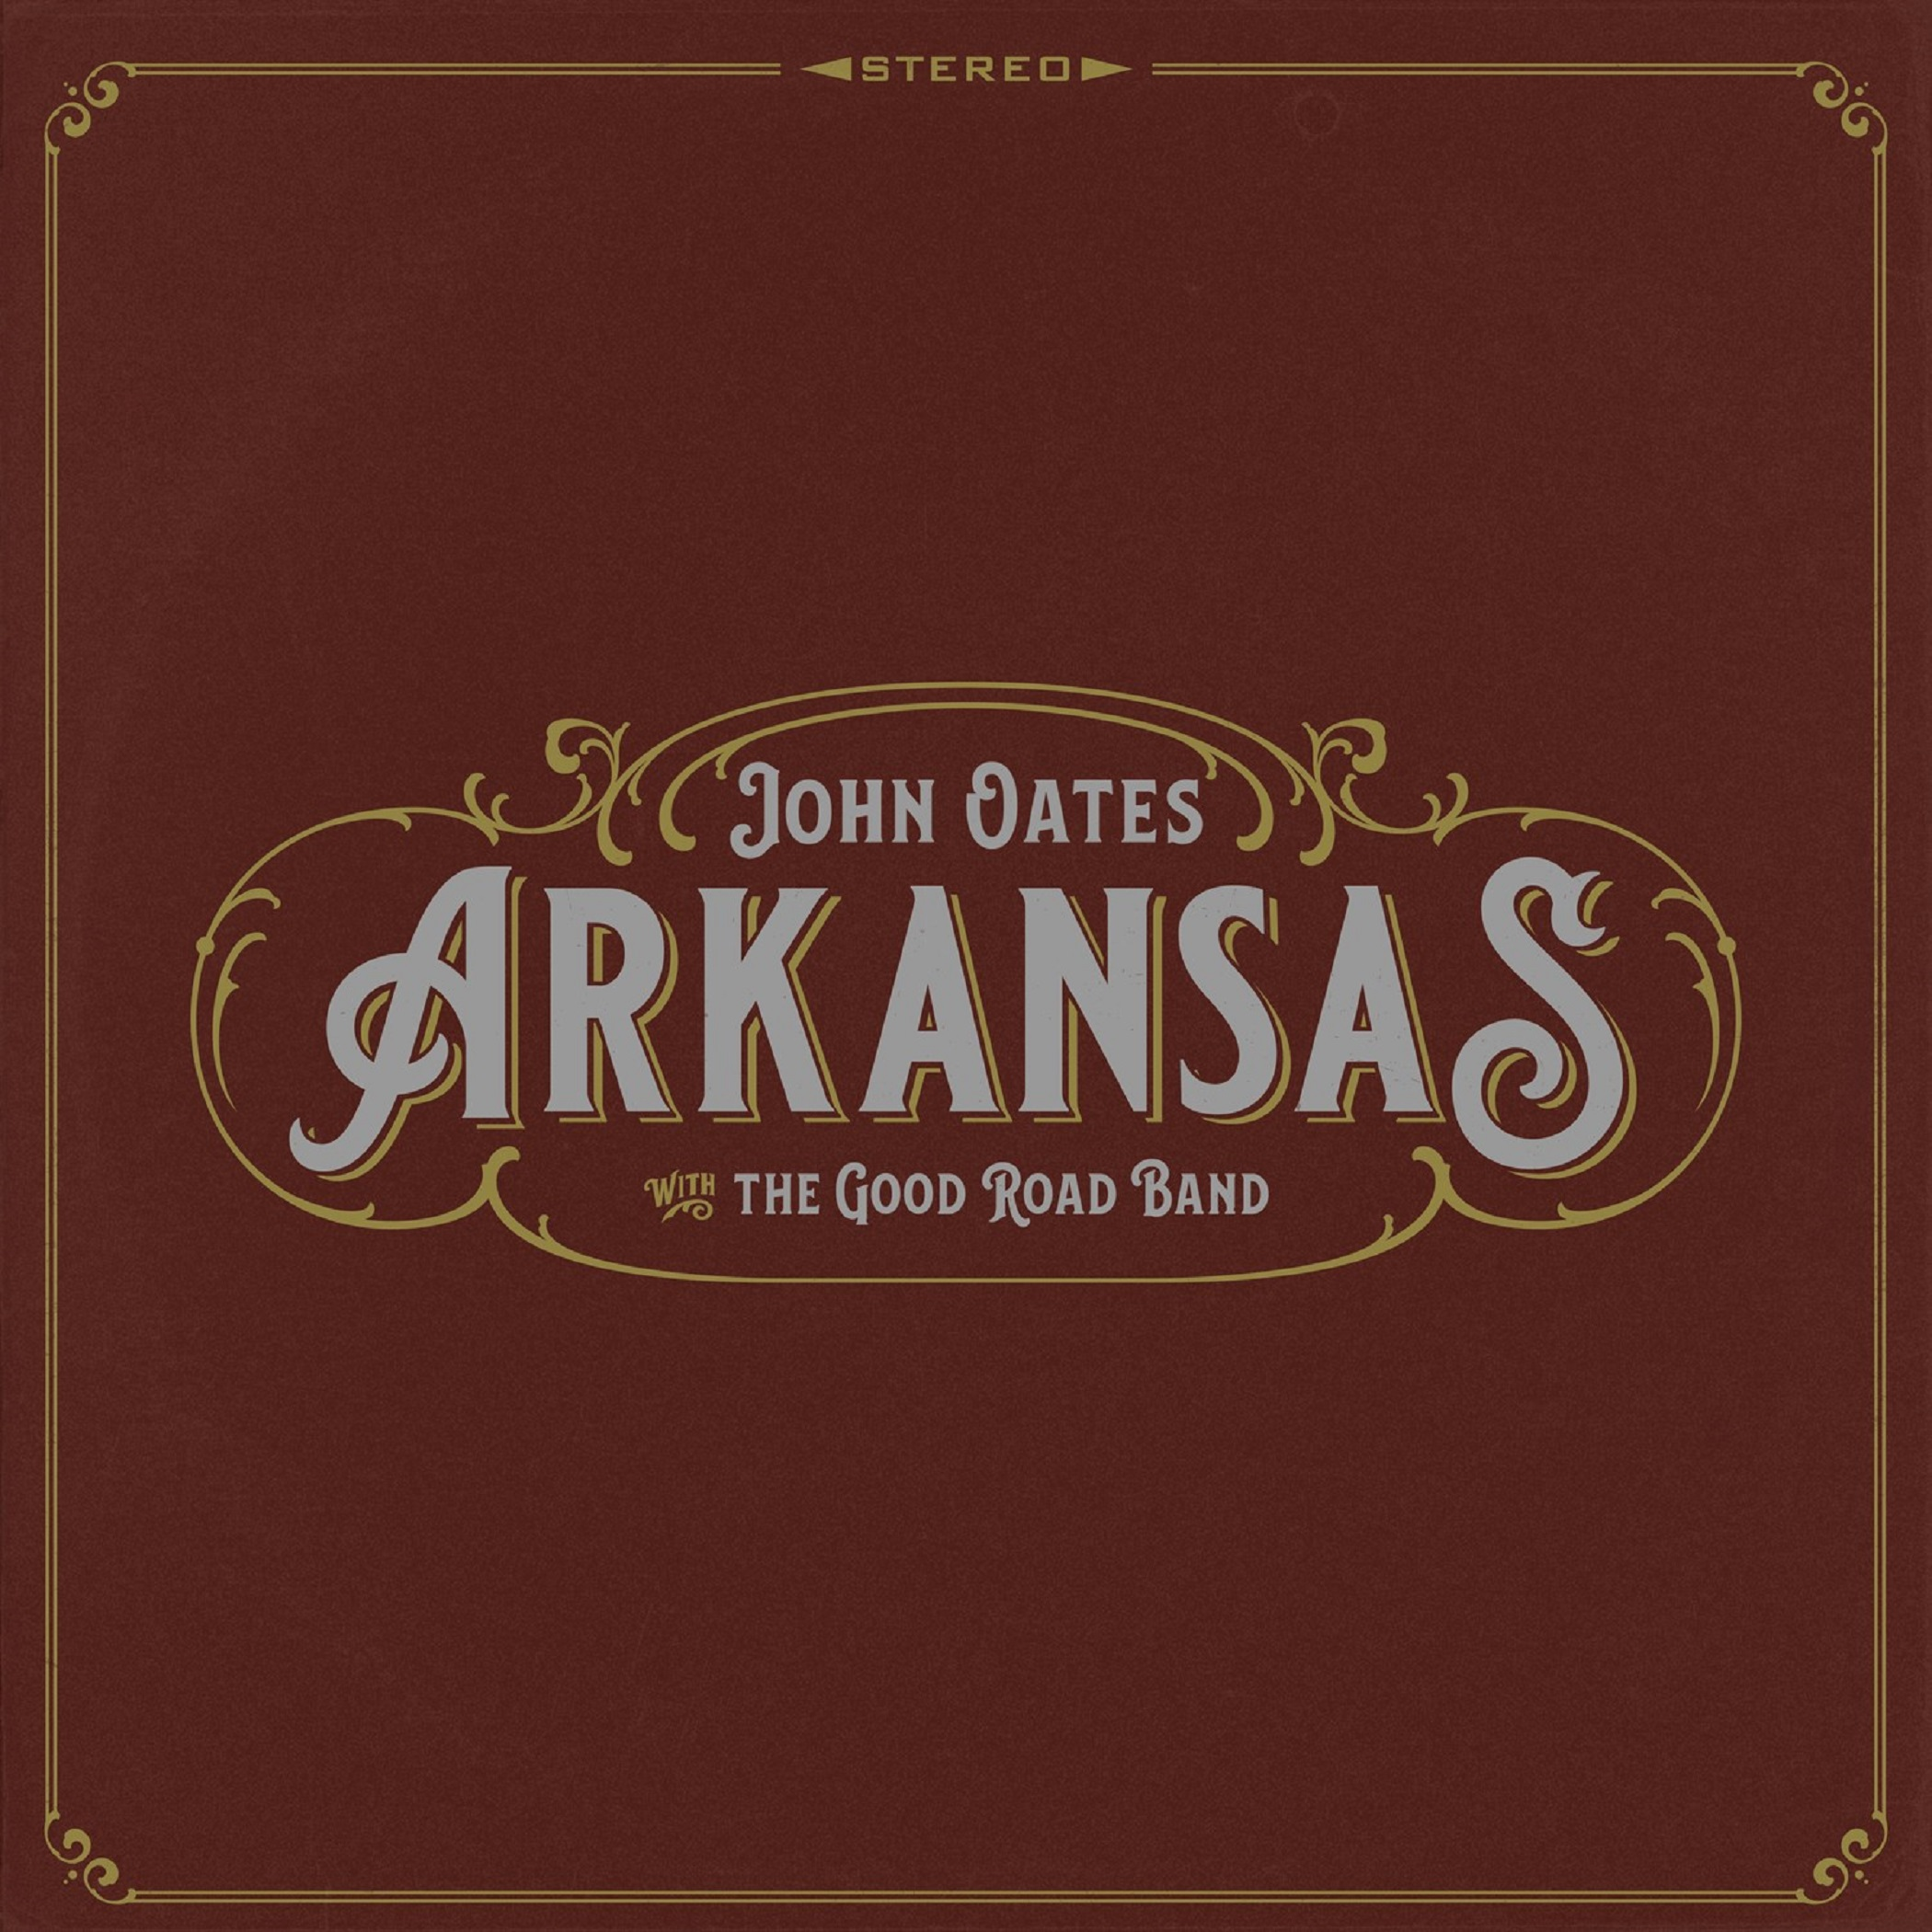 John Oates' Critically-Acclaimed Album 'Arkansas' Out Today